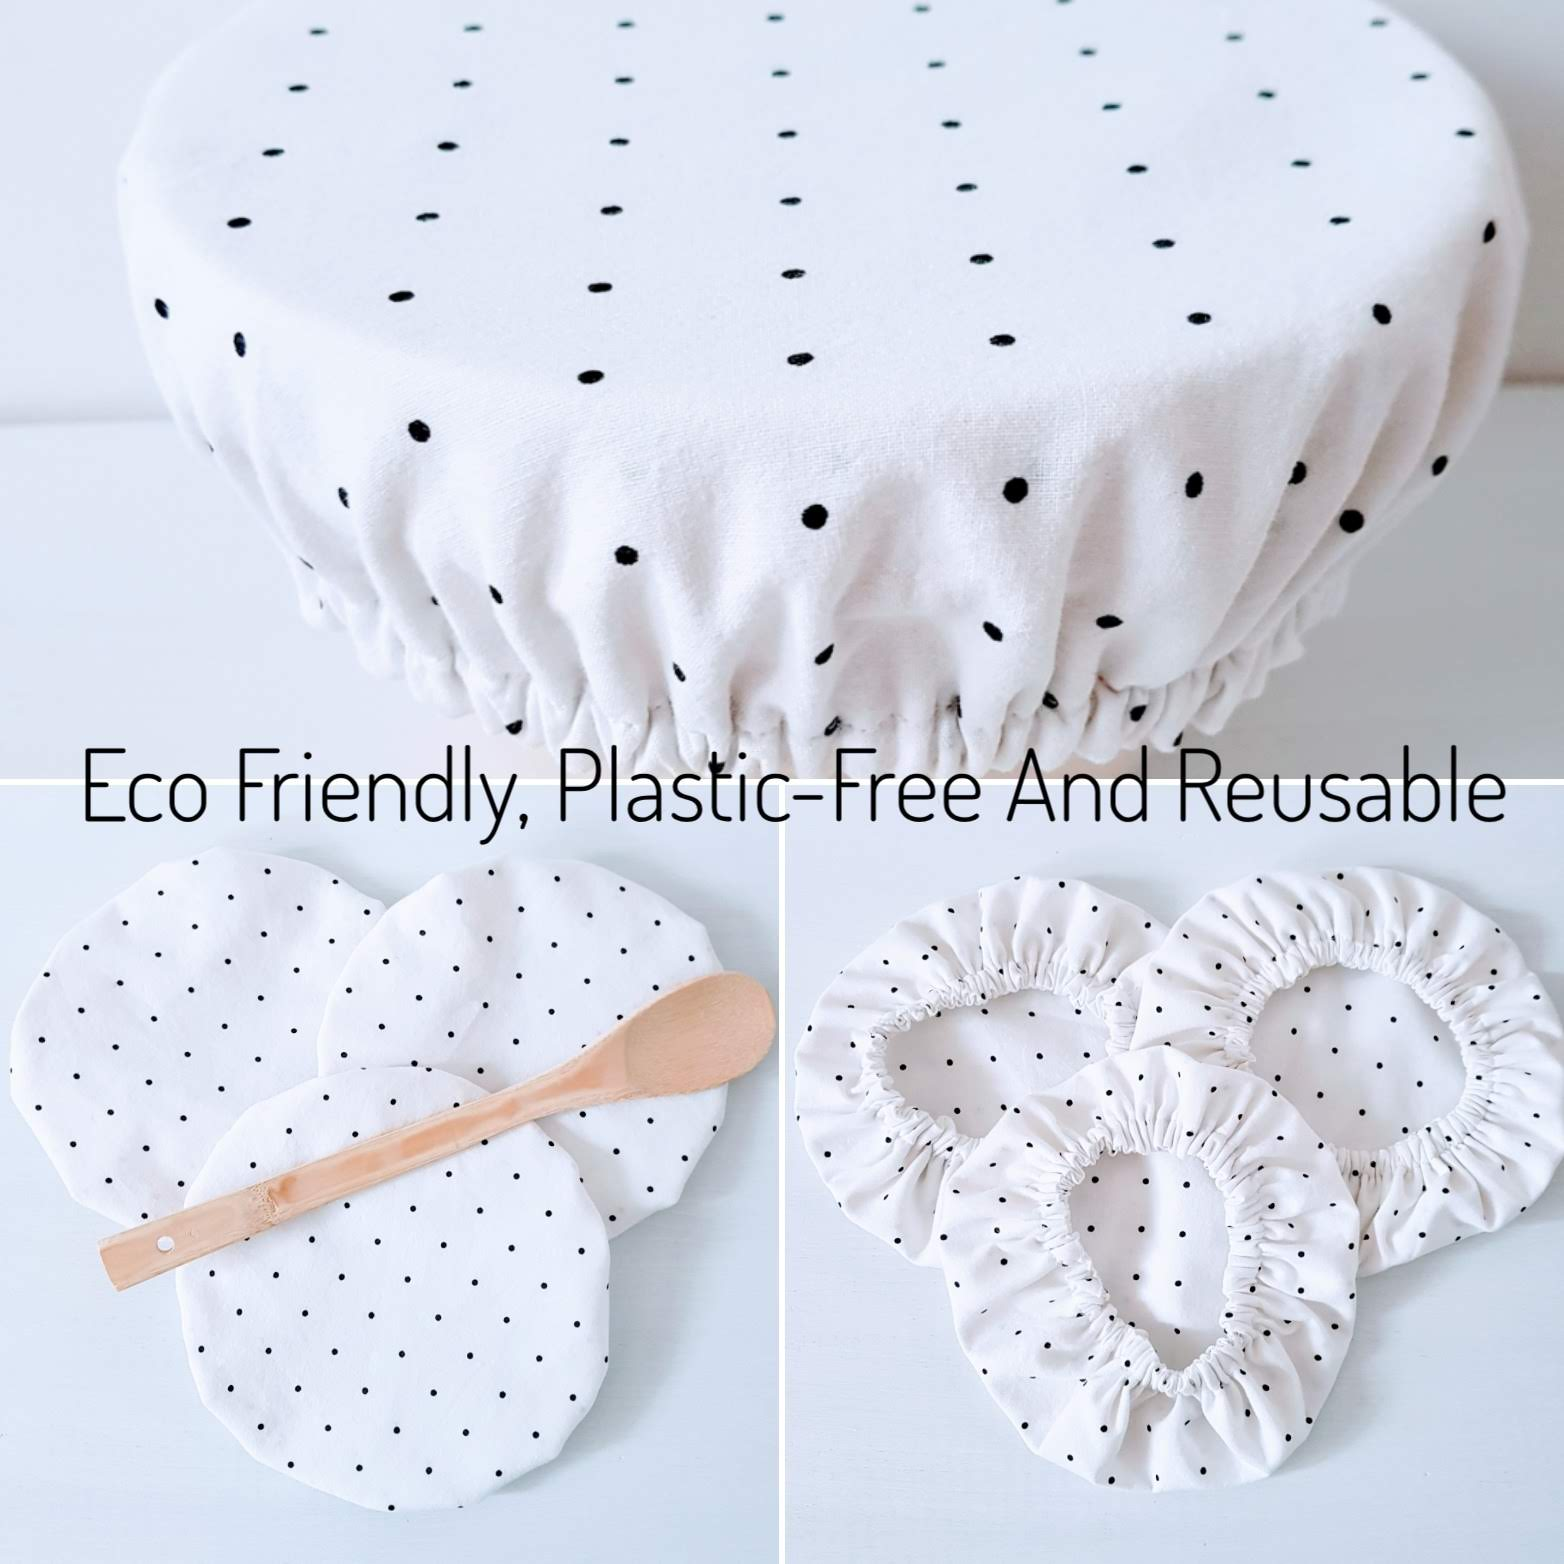 French Linen Bowl Covers Zero Waste Eco Gifts Plastic Free Kitchen Decor Table Decor Reusable Gifts